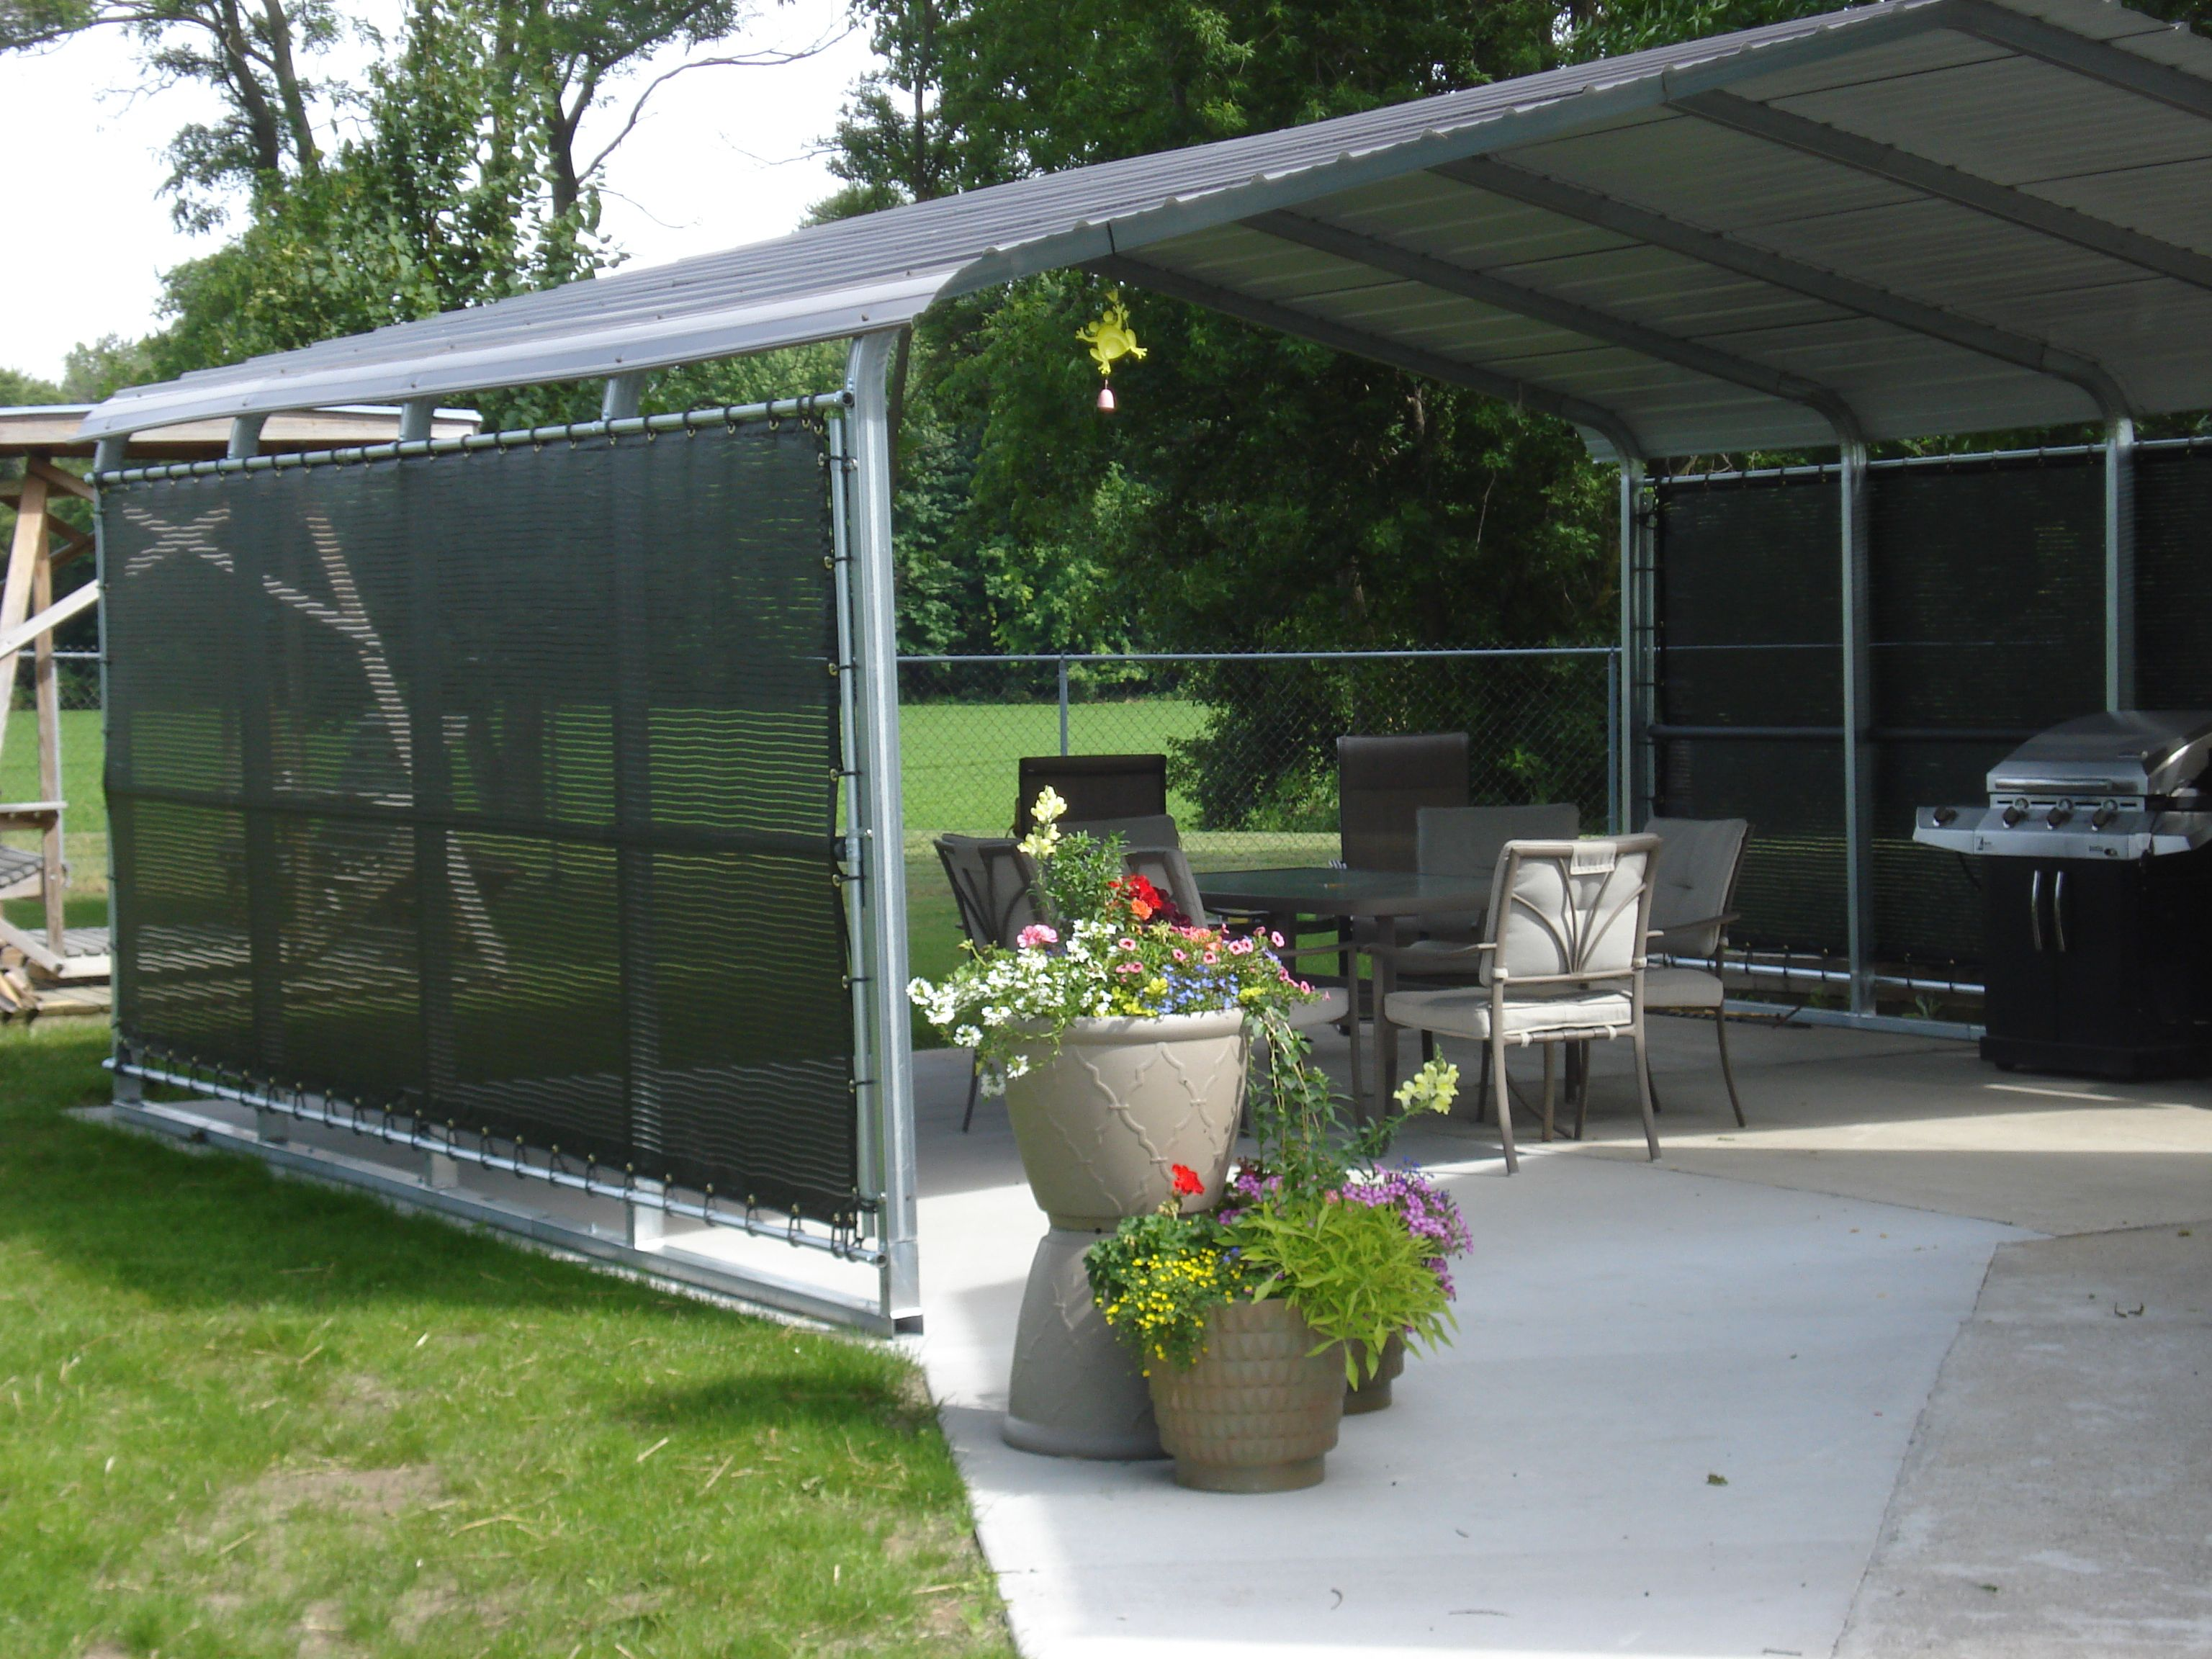 A Shade Screen For The Patio Adds Comfort To Backyard Seating Www Windscreensupply Net Carport Shade Backyard Seating Shade Screen